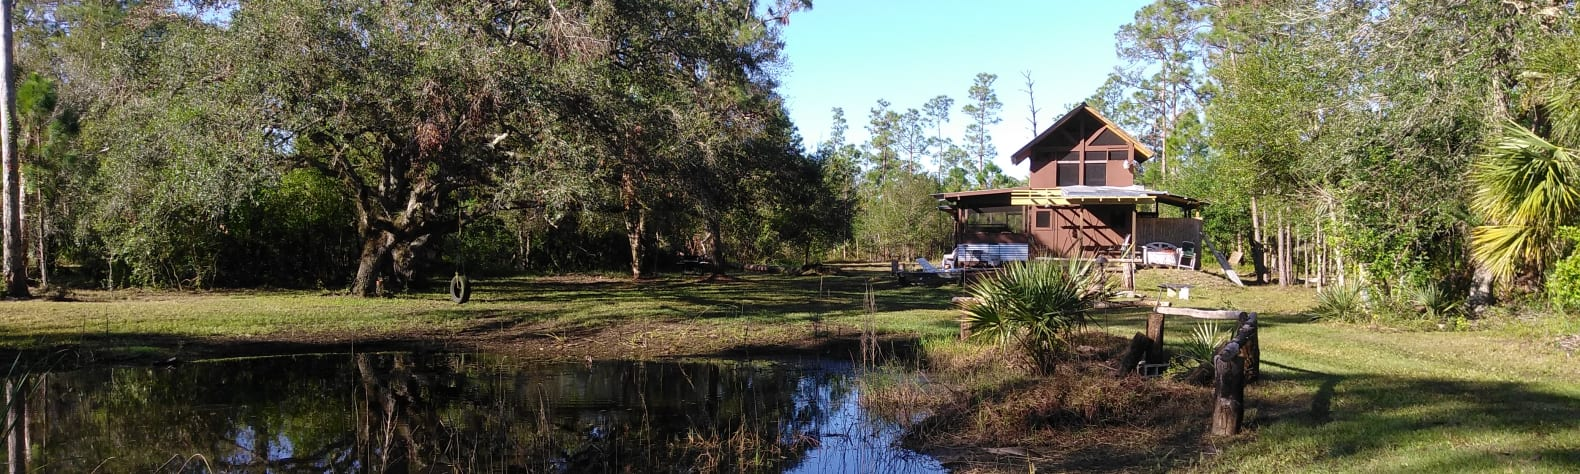 Huge Clewiston Ranch